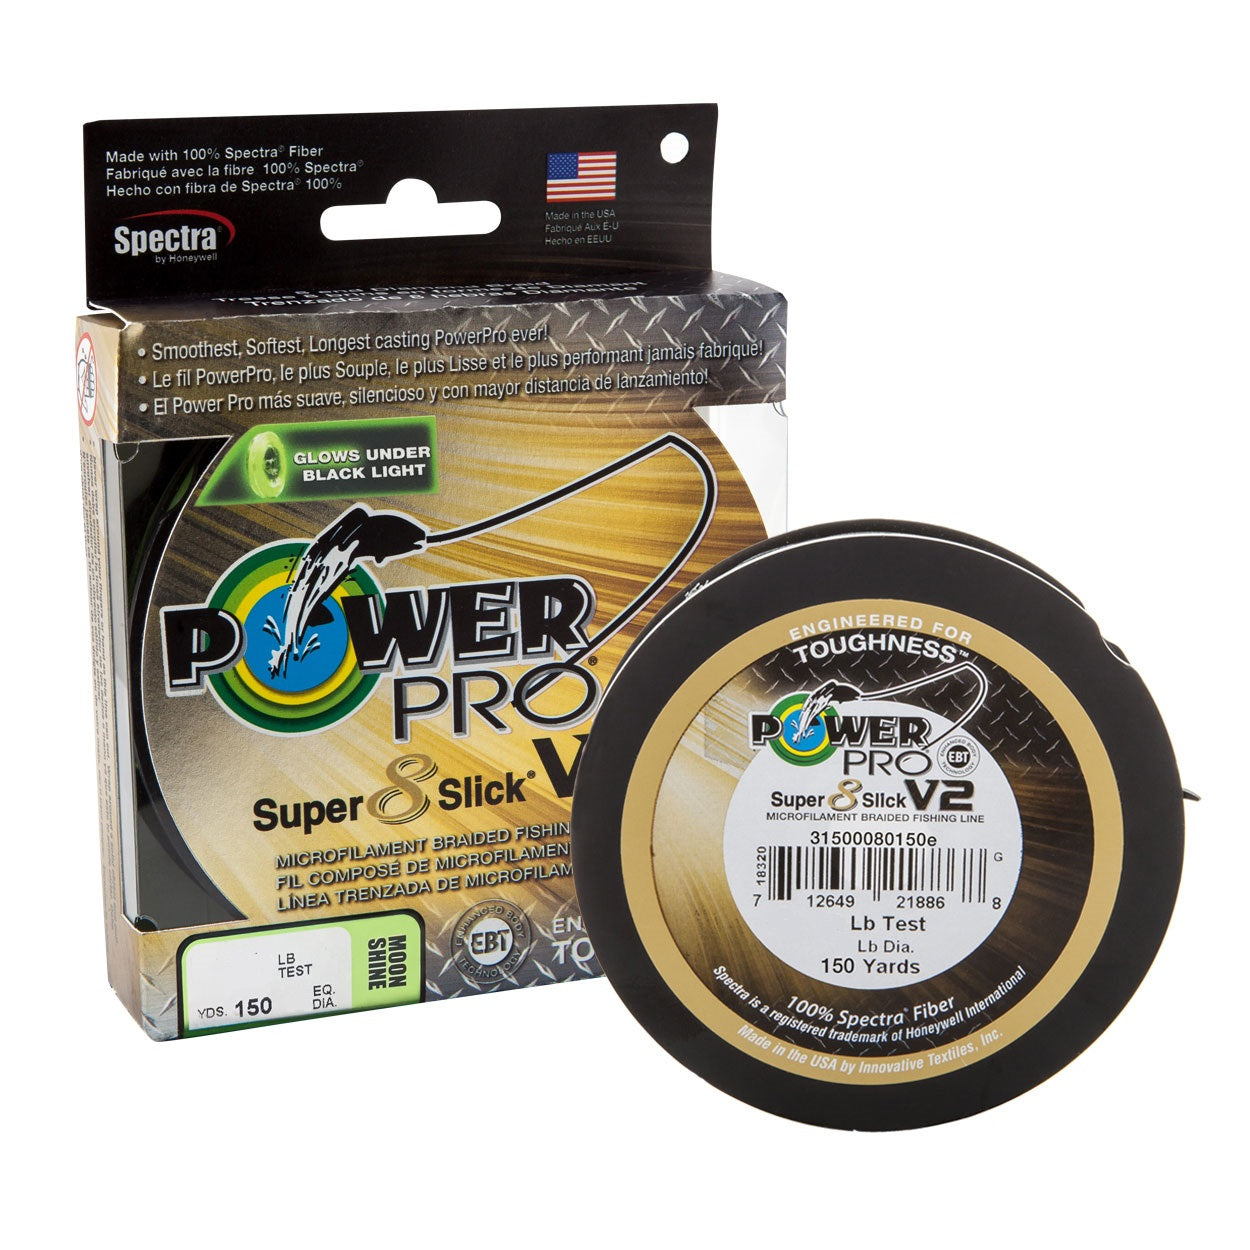 Shimano Power Pro Super Slick V2 Moonshine Braid Line 150m